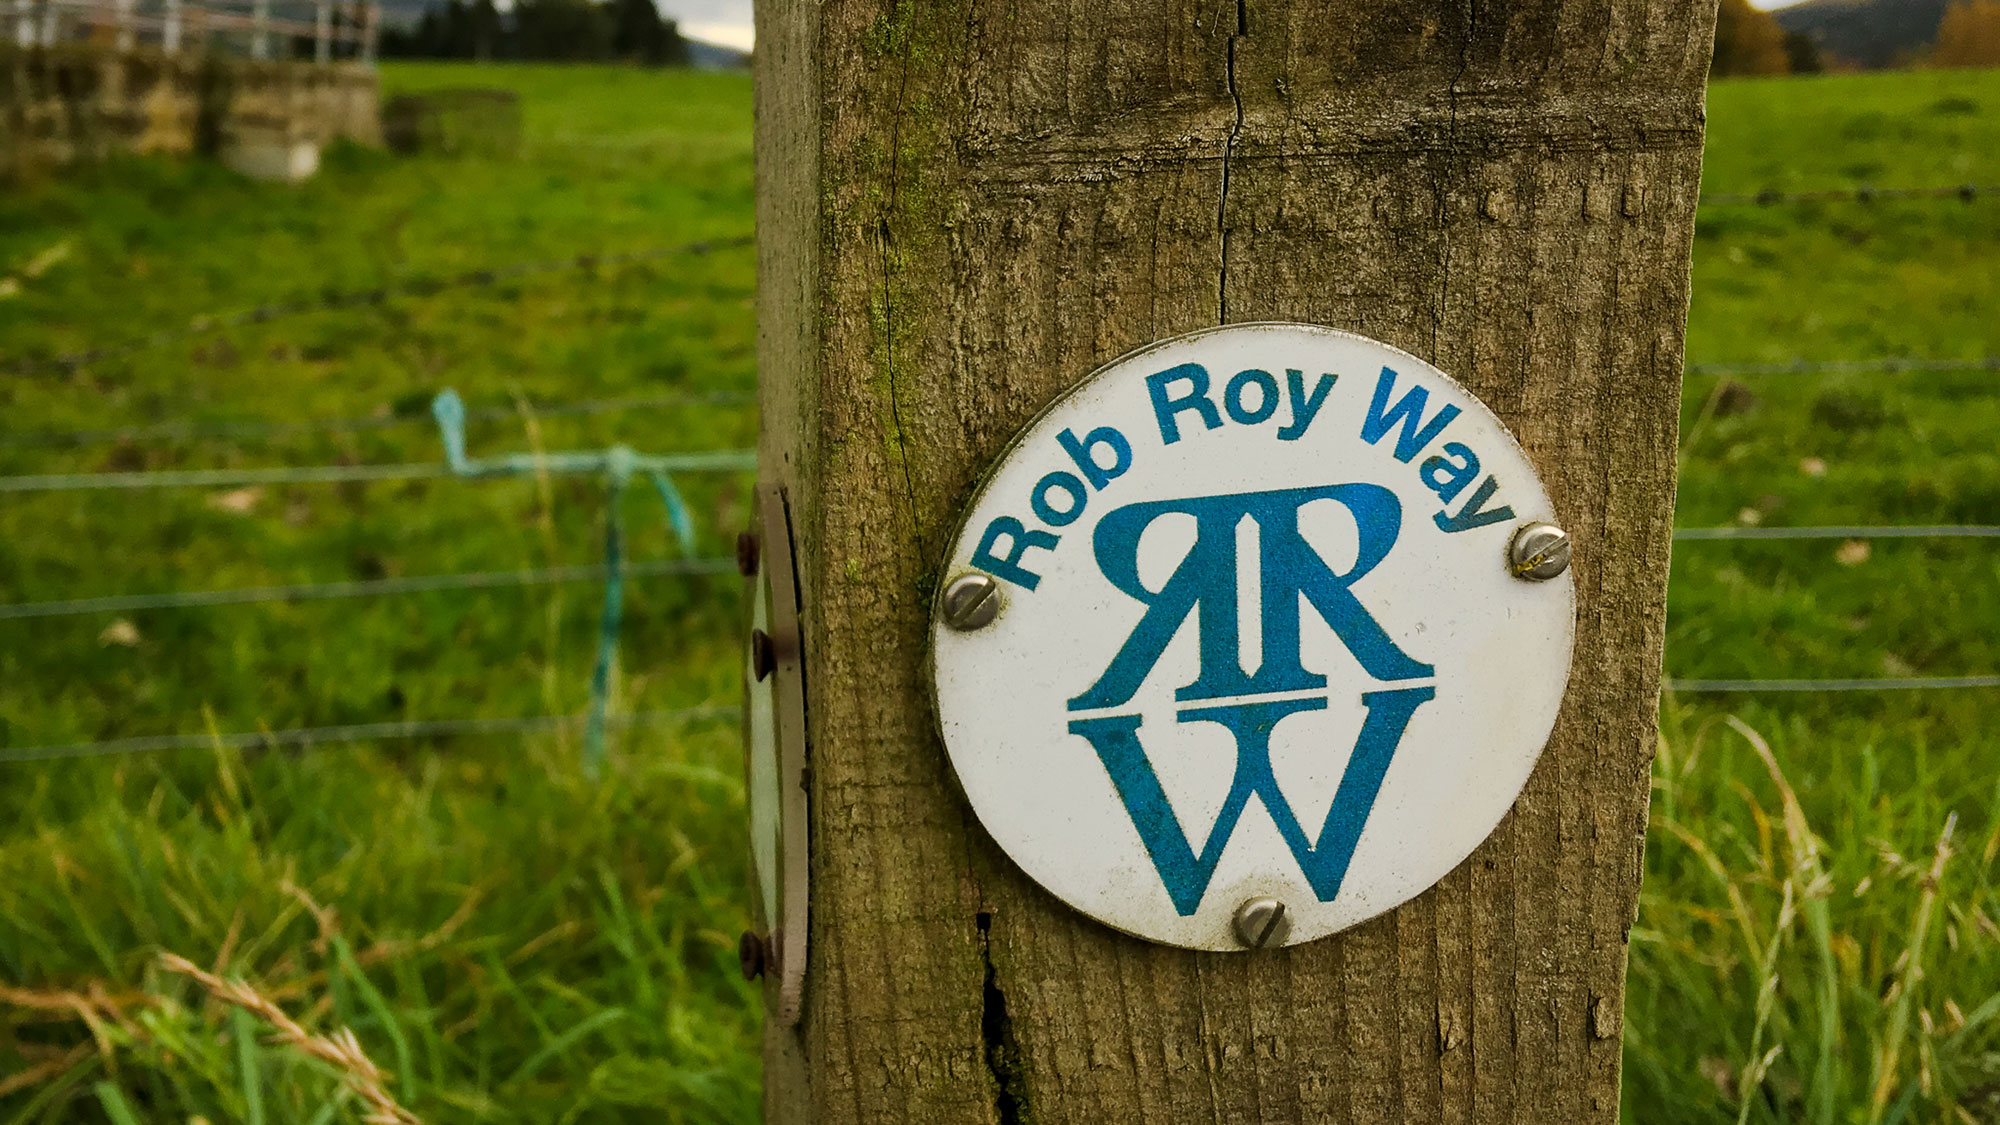 Wanderwegweiser Rob Roy Way an Holzpfosten